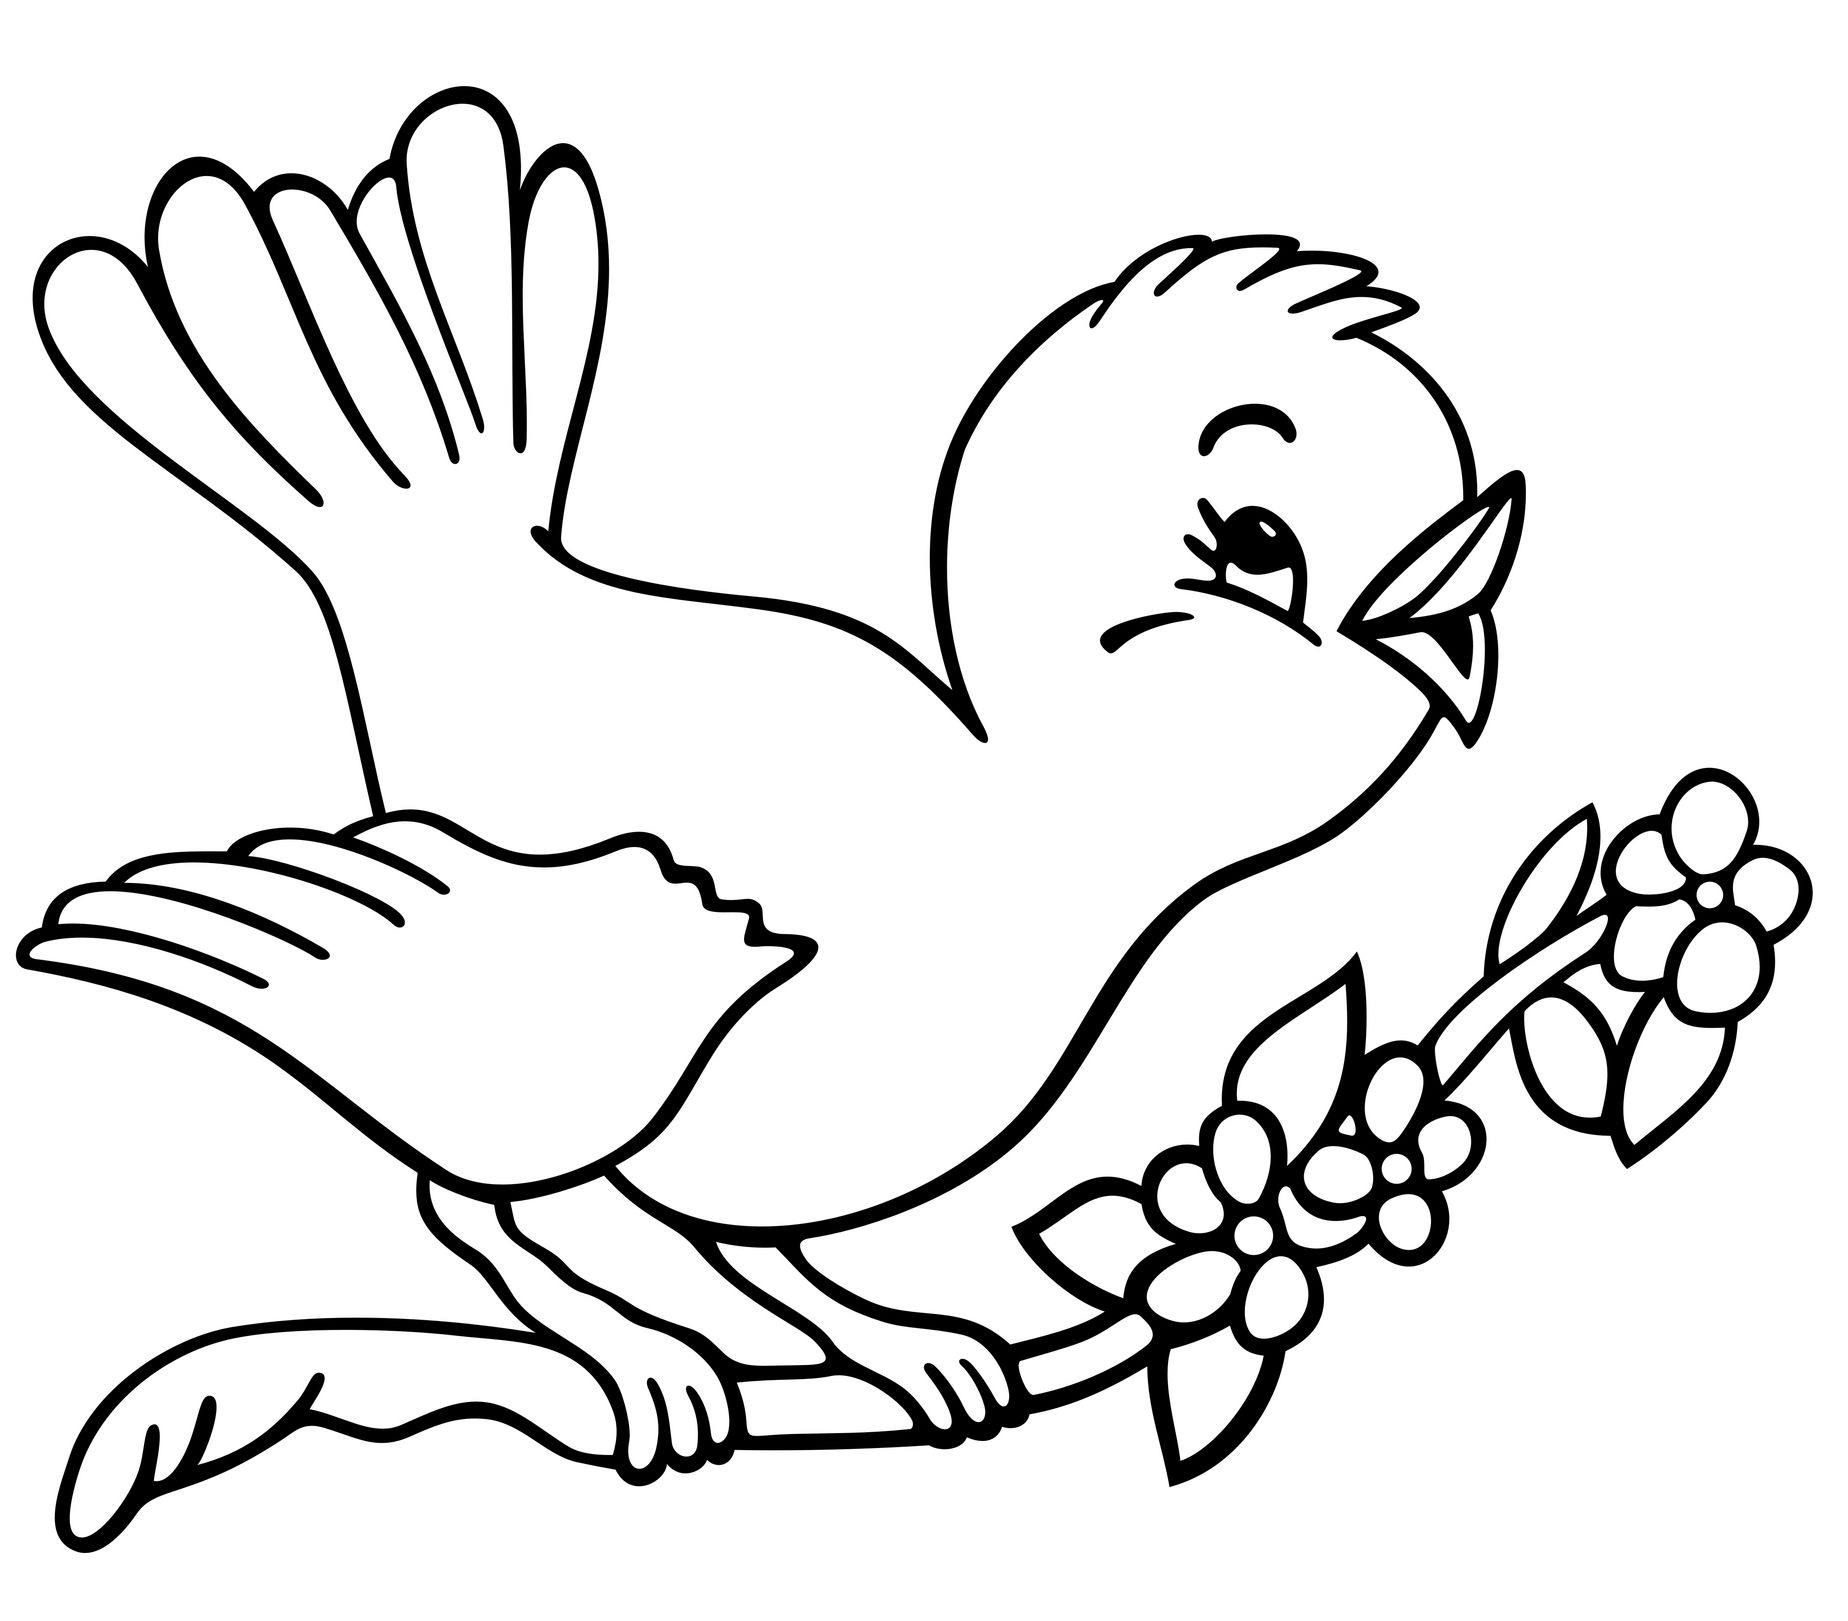 Bird Coloring Pages Printable Sheets For Kids Get The Latest Free Images Favorite To Print Online